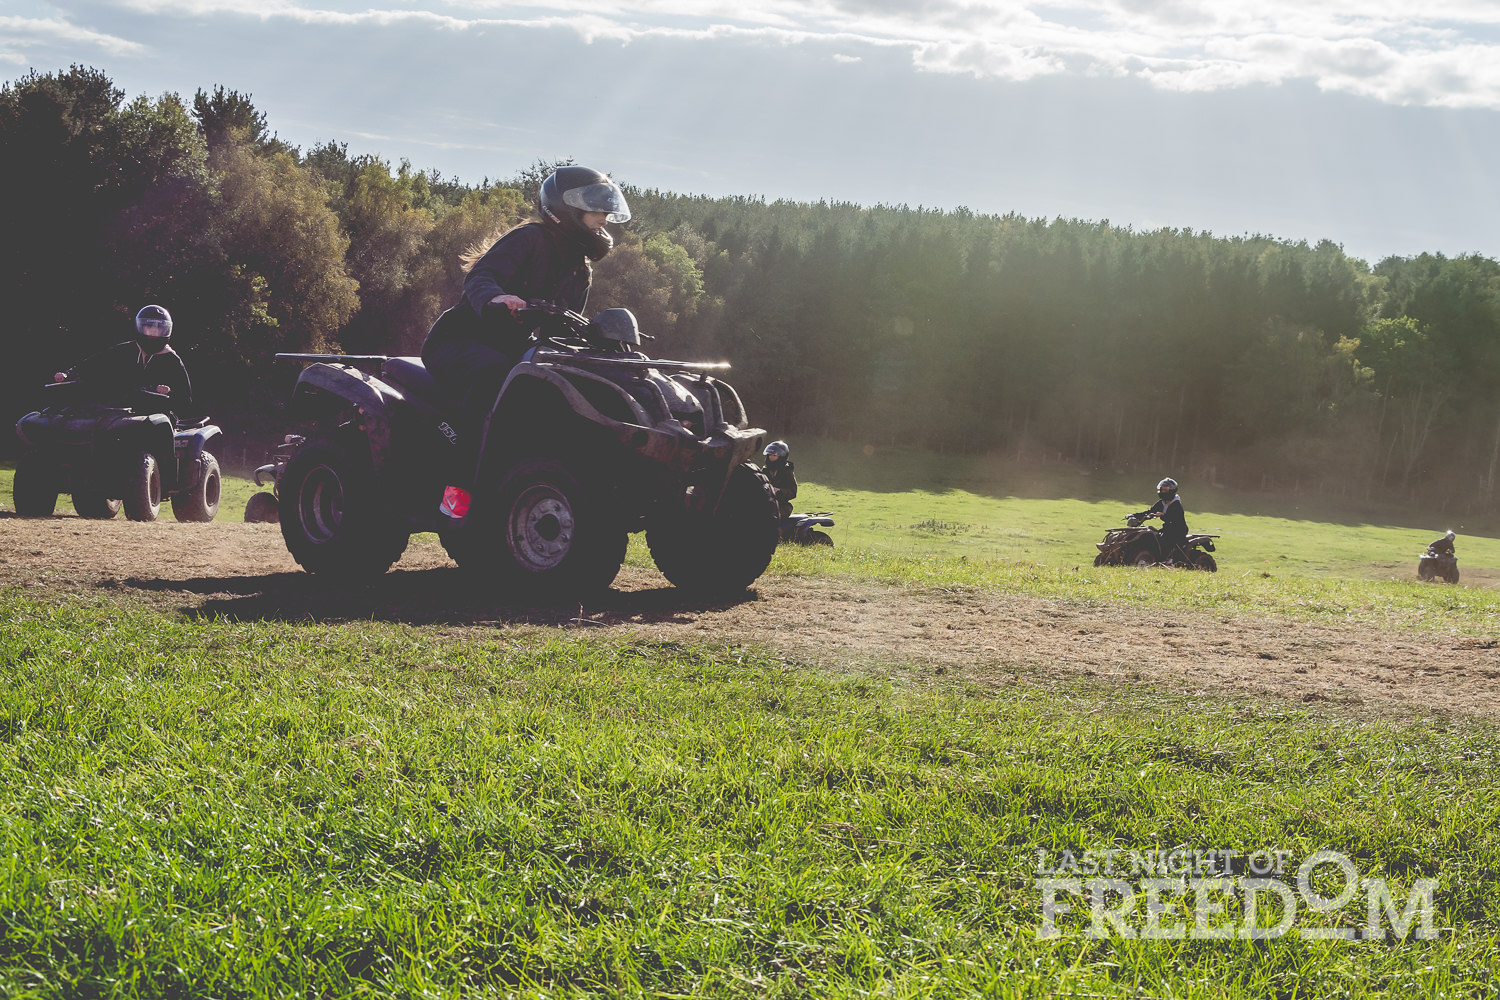 LNOF staff driving quad bikes up a hilly field